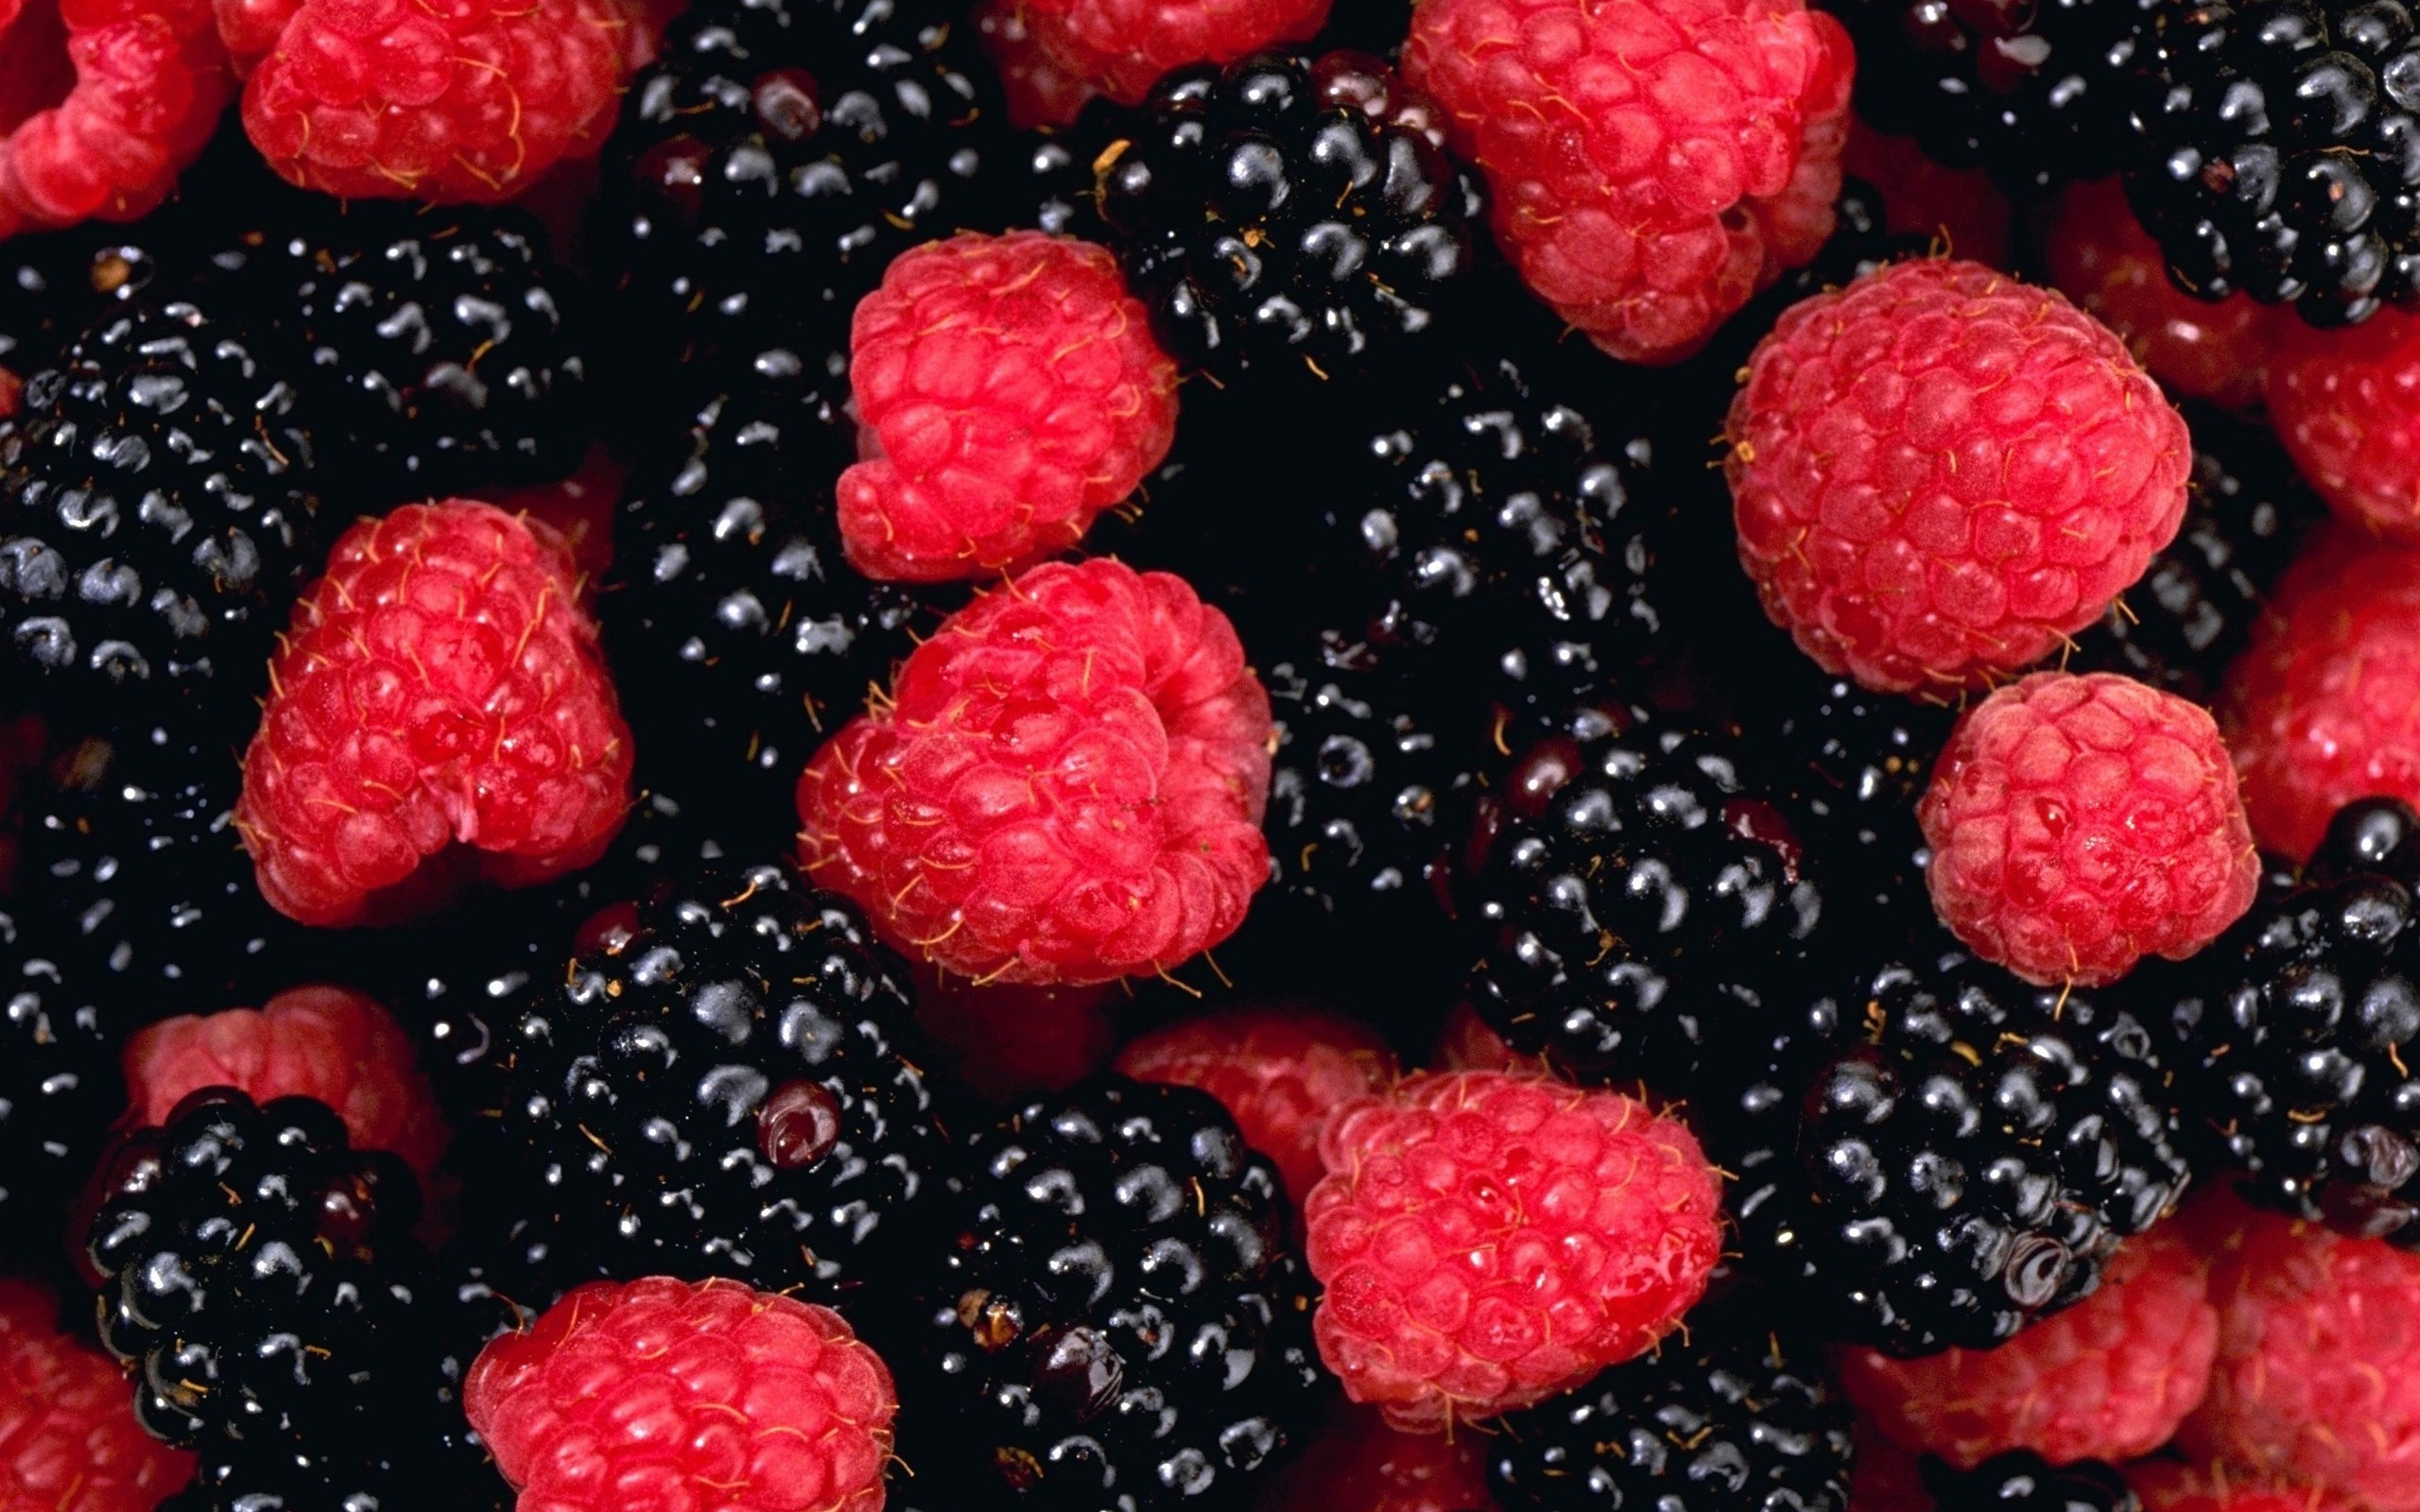 Download Blackberry Fruit Wallpaper HD Photos pictures in high 2560x1600